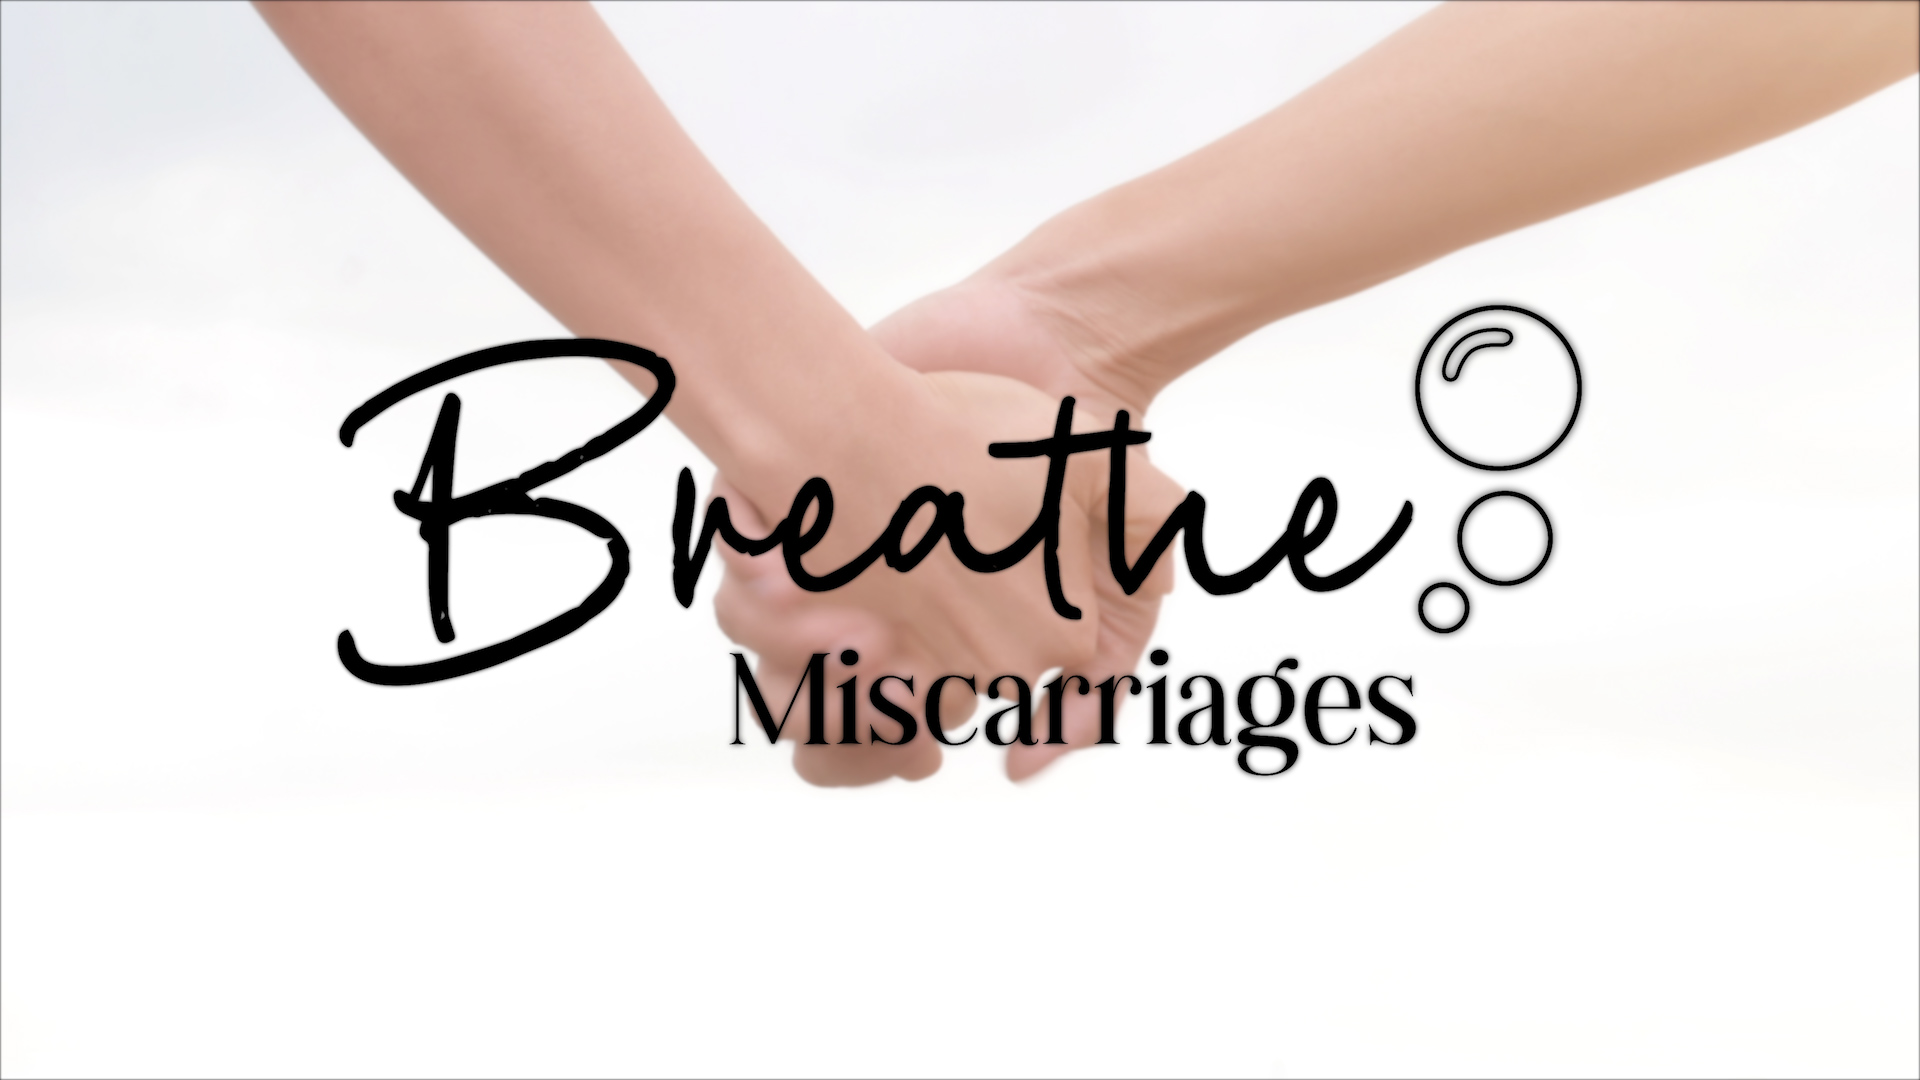 Breathe: Miscarriages